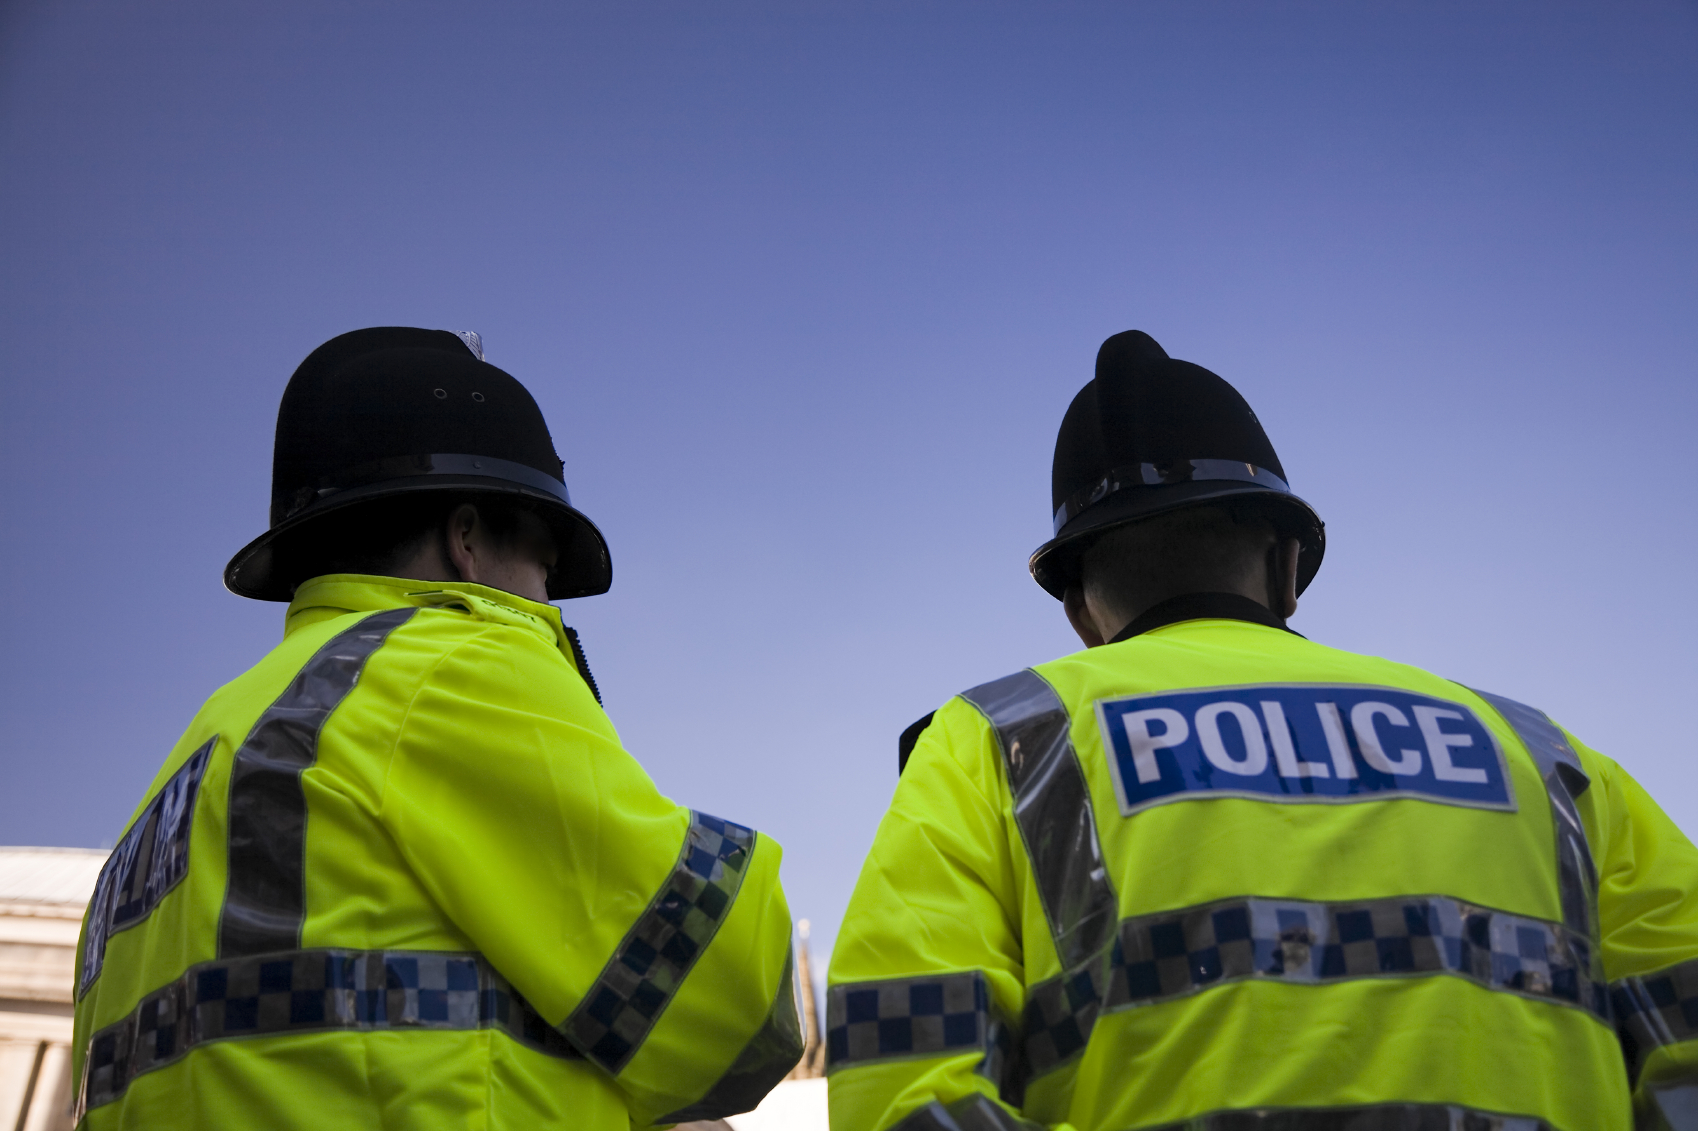 there are a huge number of police service careers available